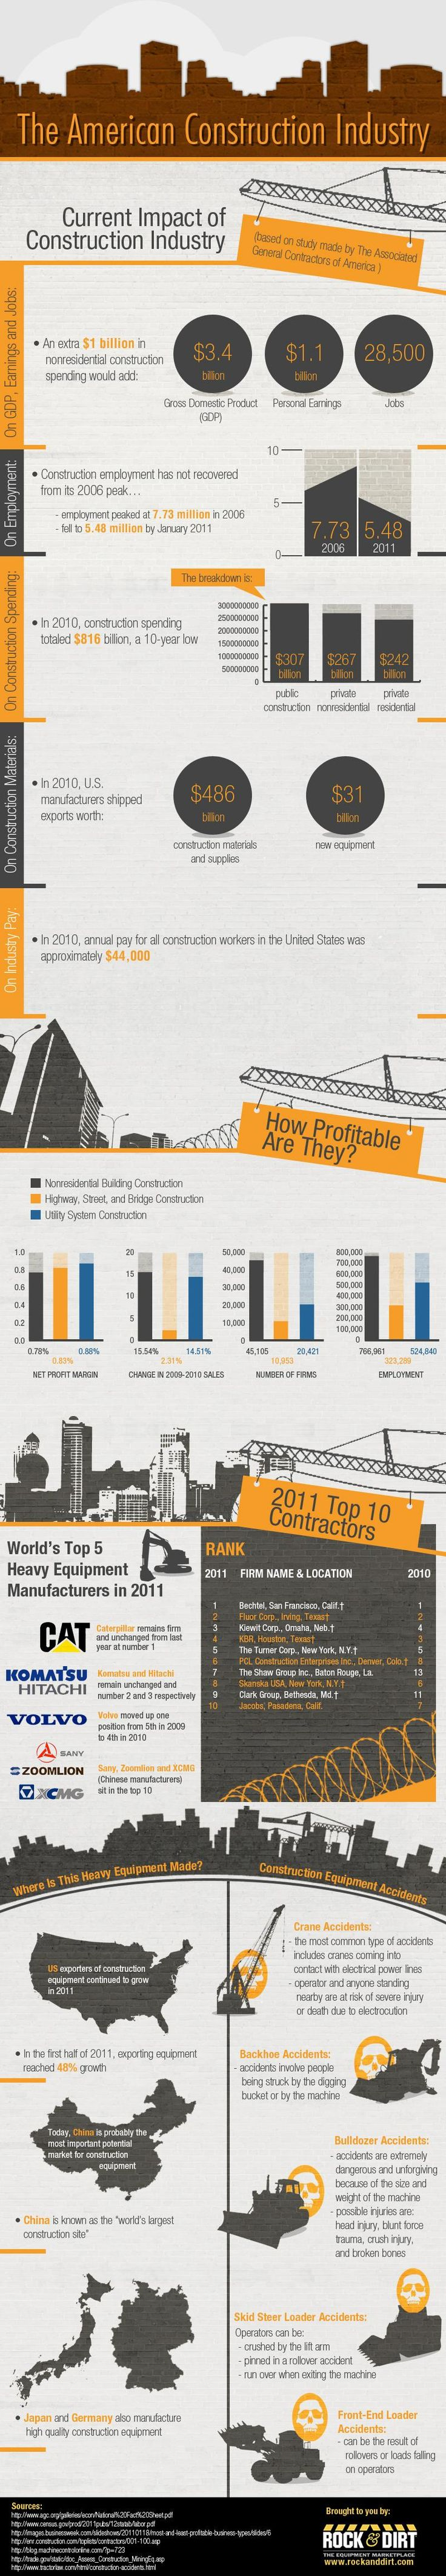 15 Best Images About Construction Infographics On